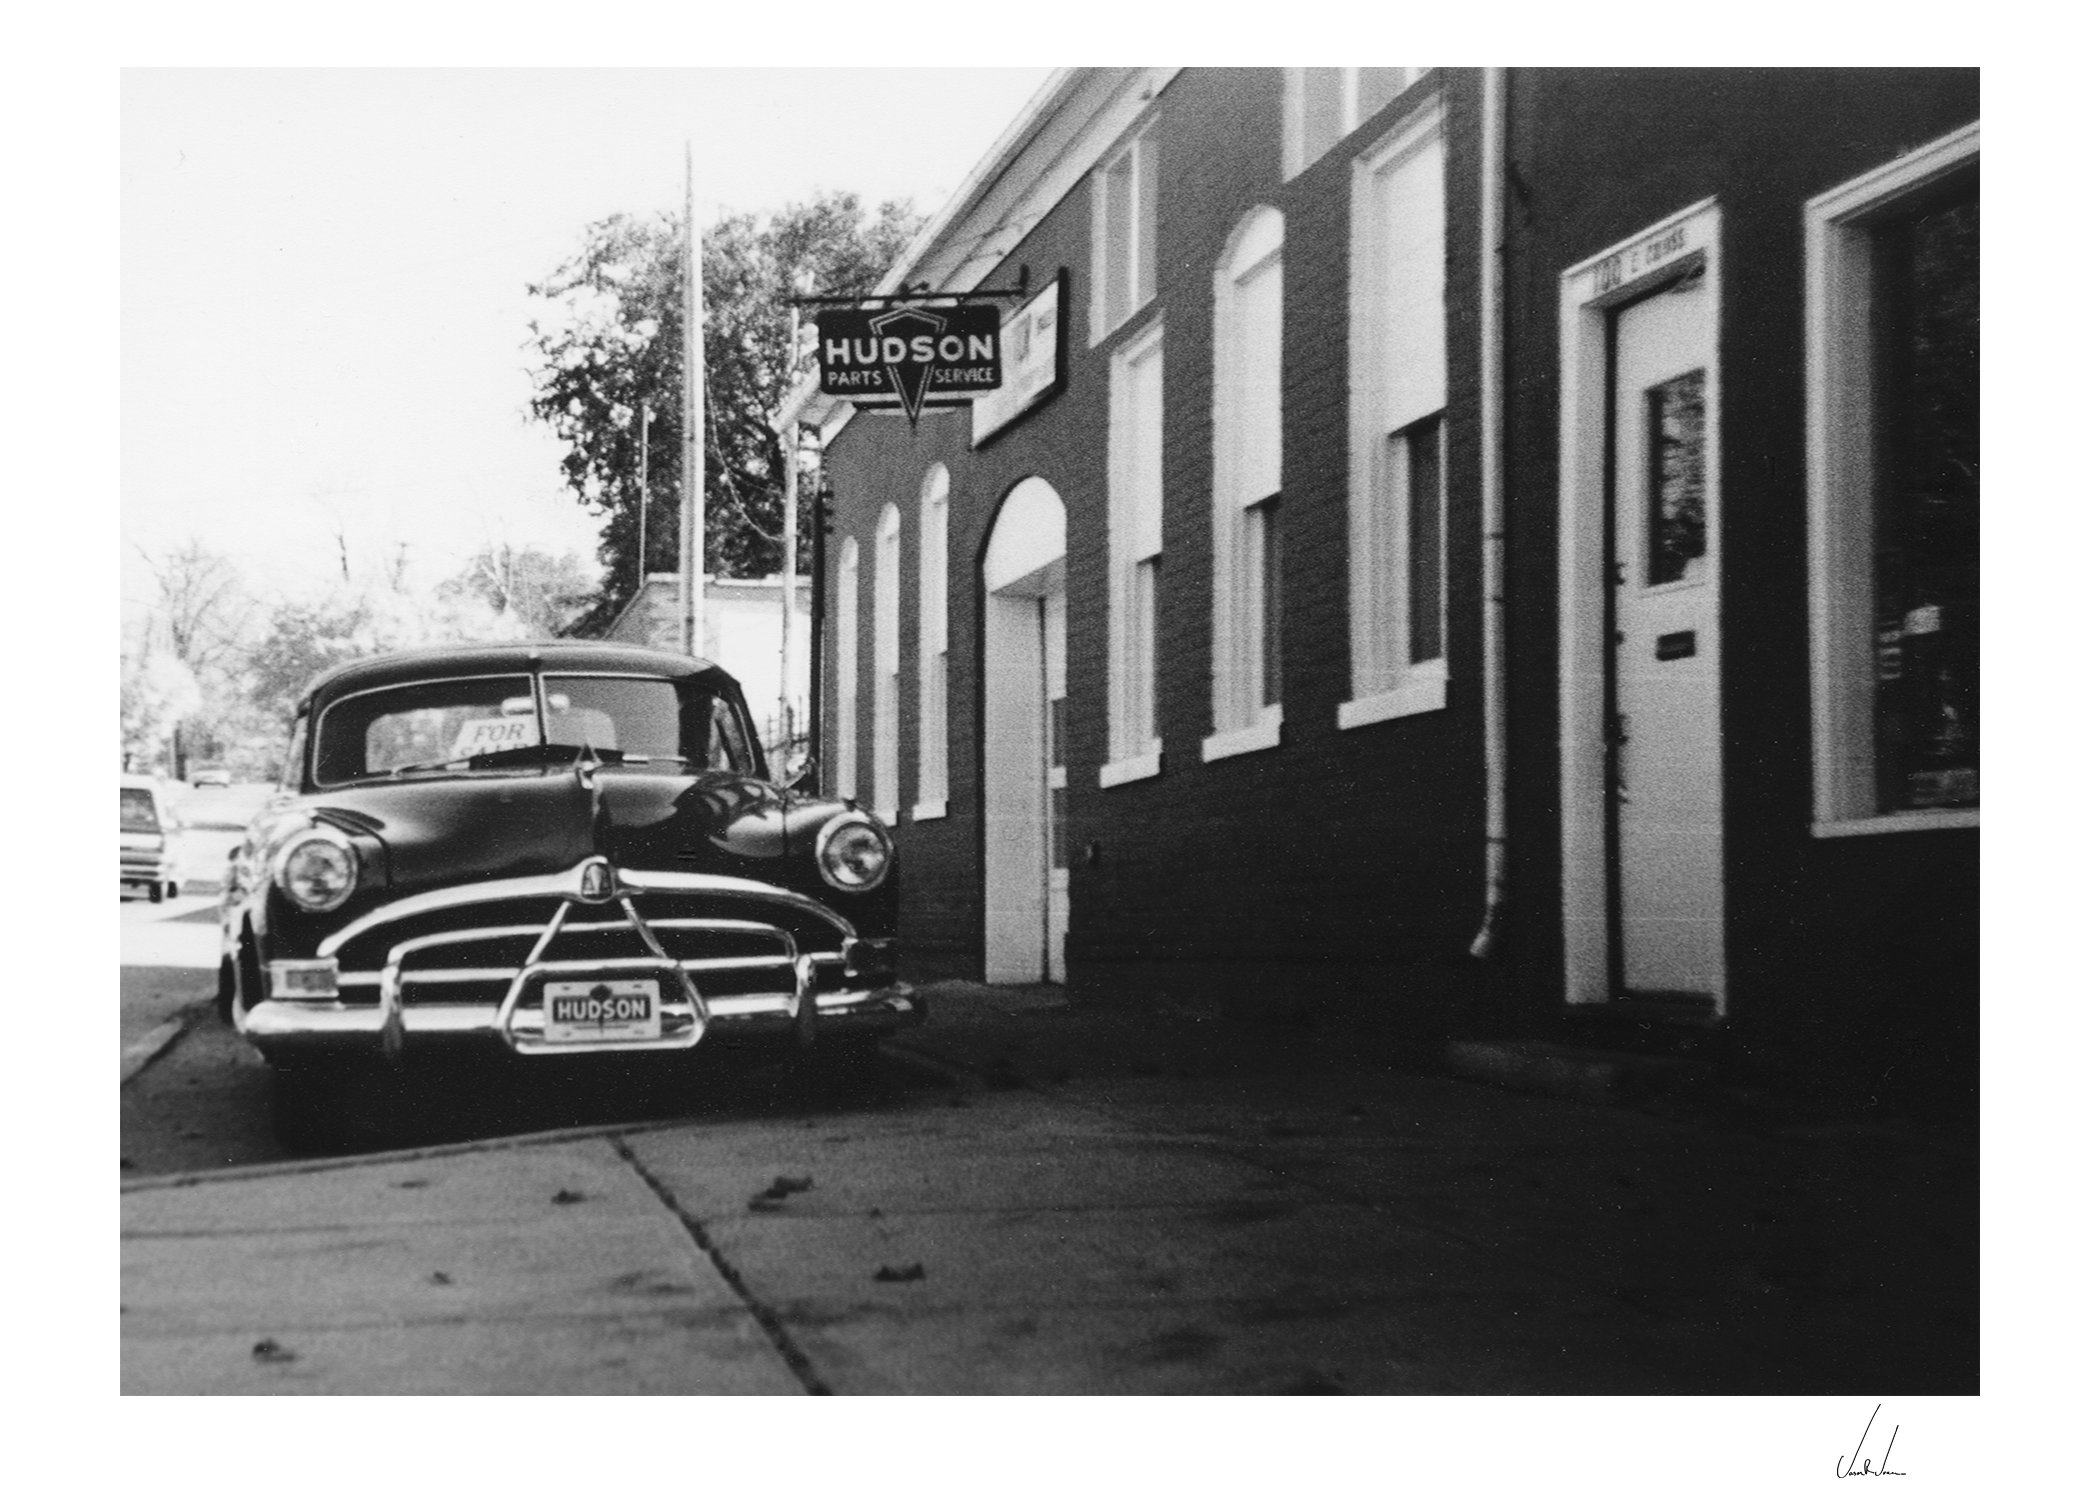 Hudson Hornet, Ypsilanti, Michigan - 1994, Jason Robert Jones